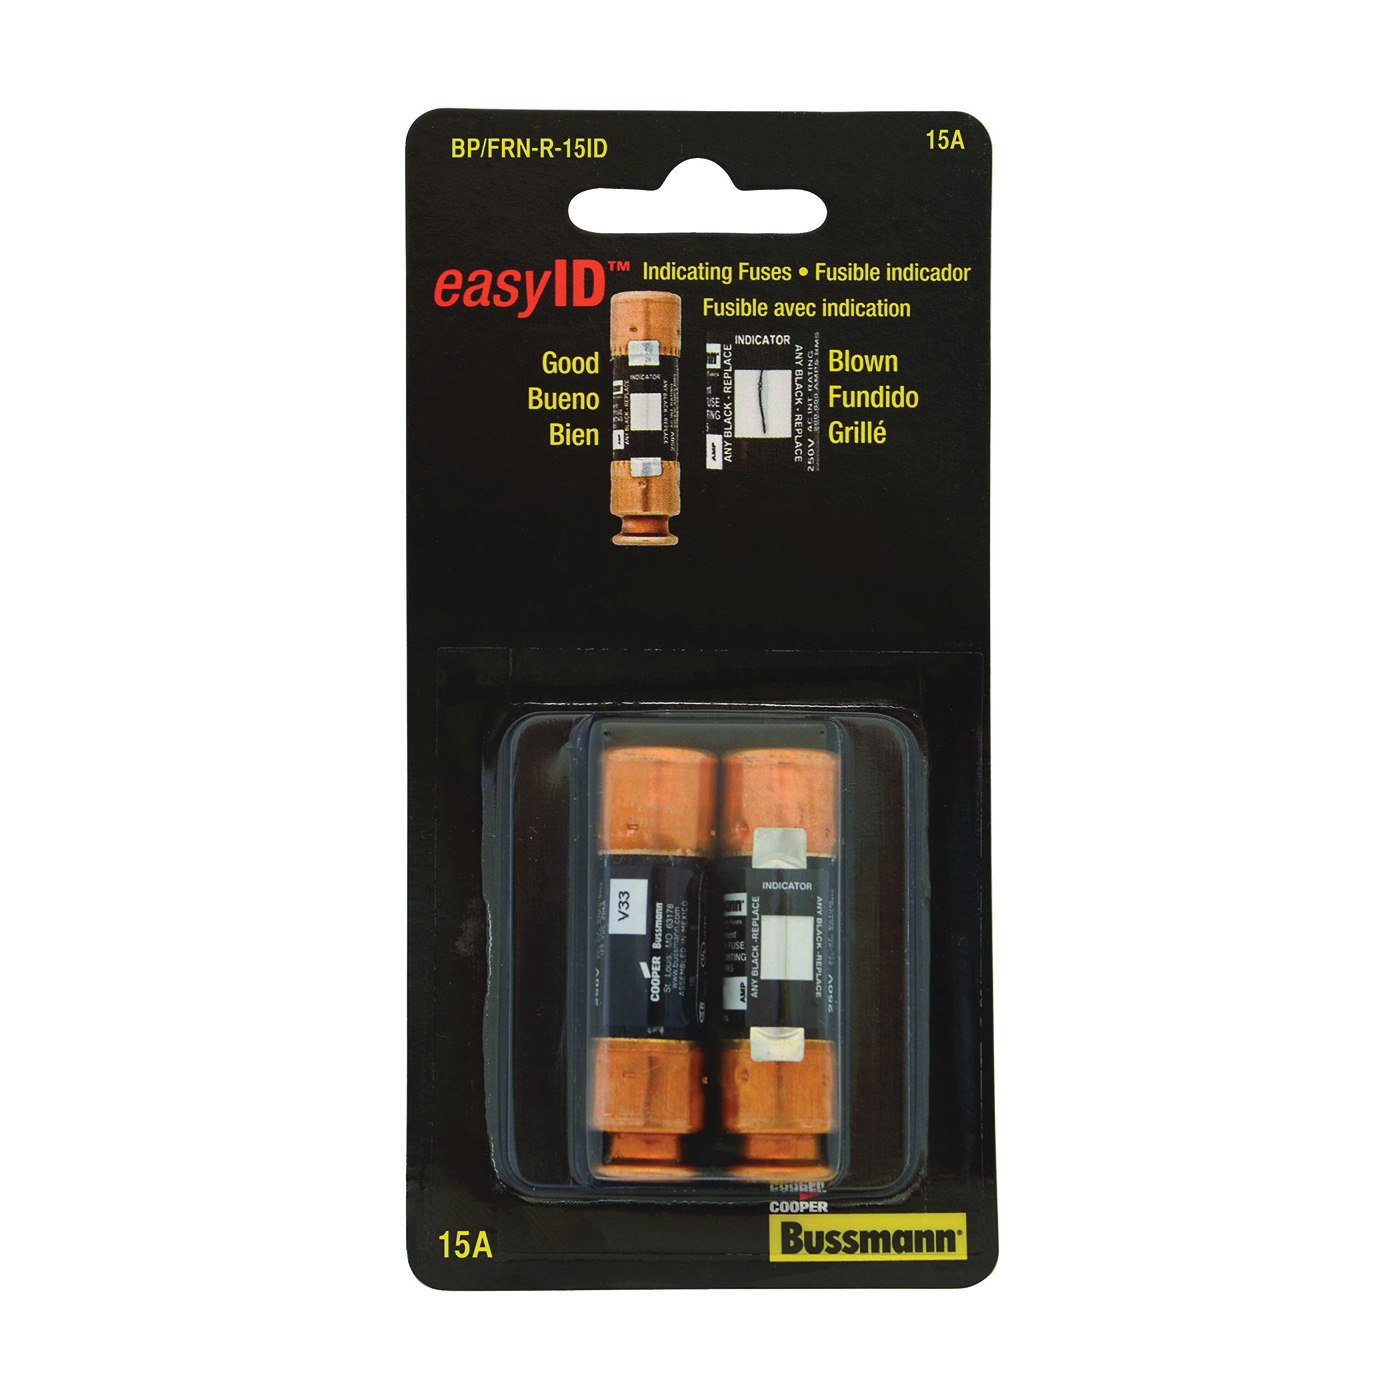 Picture of Bussmann BP/FRN-R-15ID Time-Delay Fuse, 15 A, 250 V, Cartridge Fuse